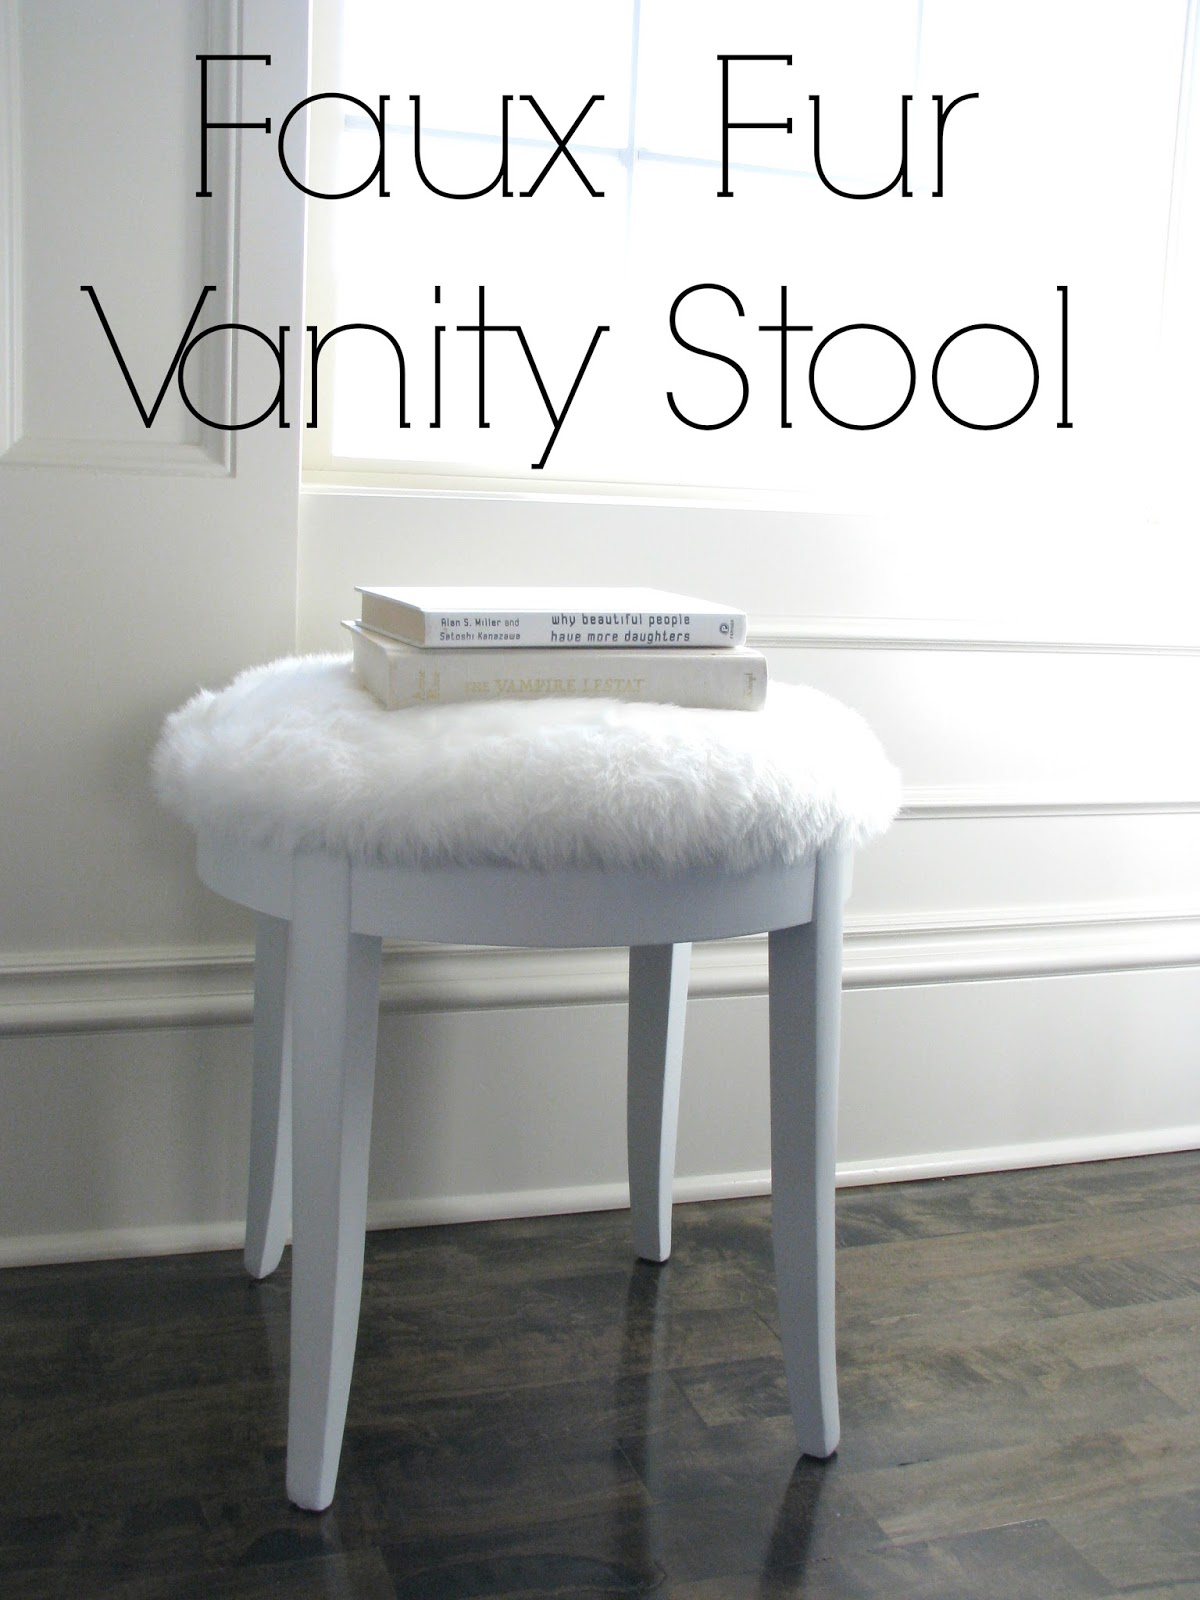 Charming Vanity Chair Pb Contemporary - Best image 3D home ...